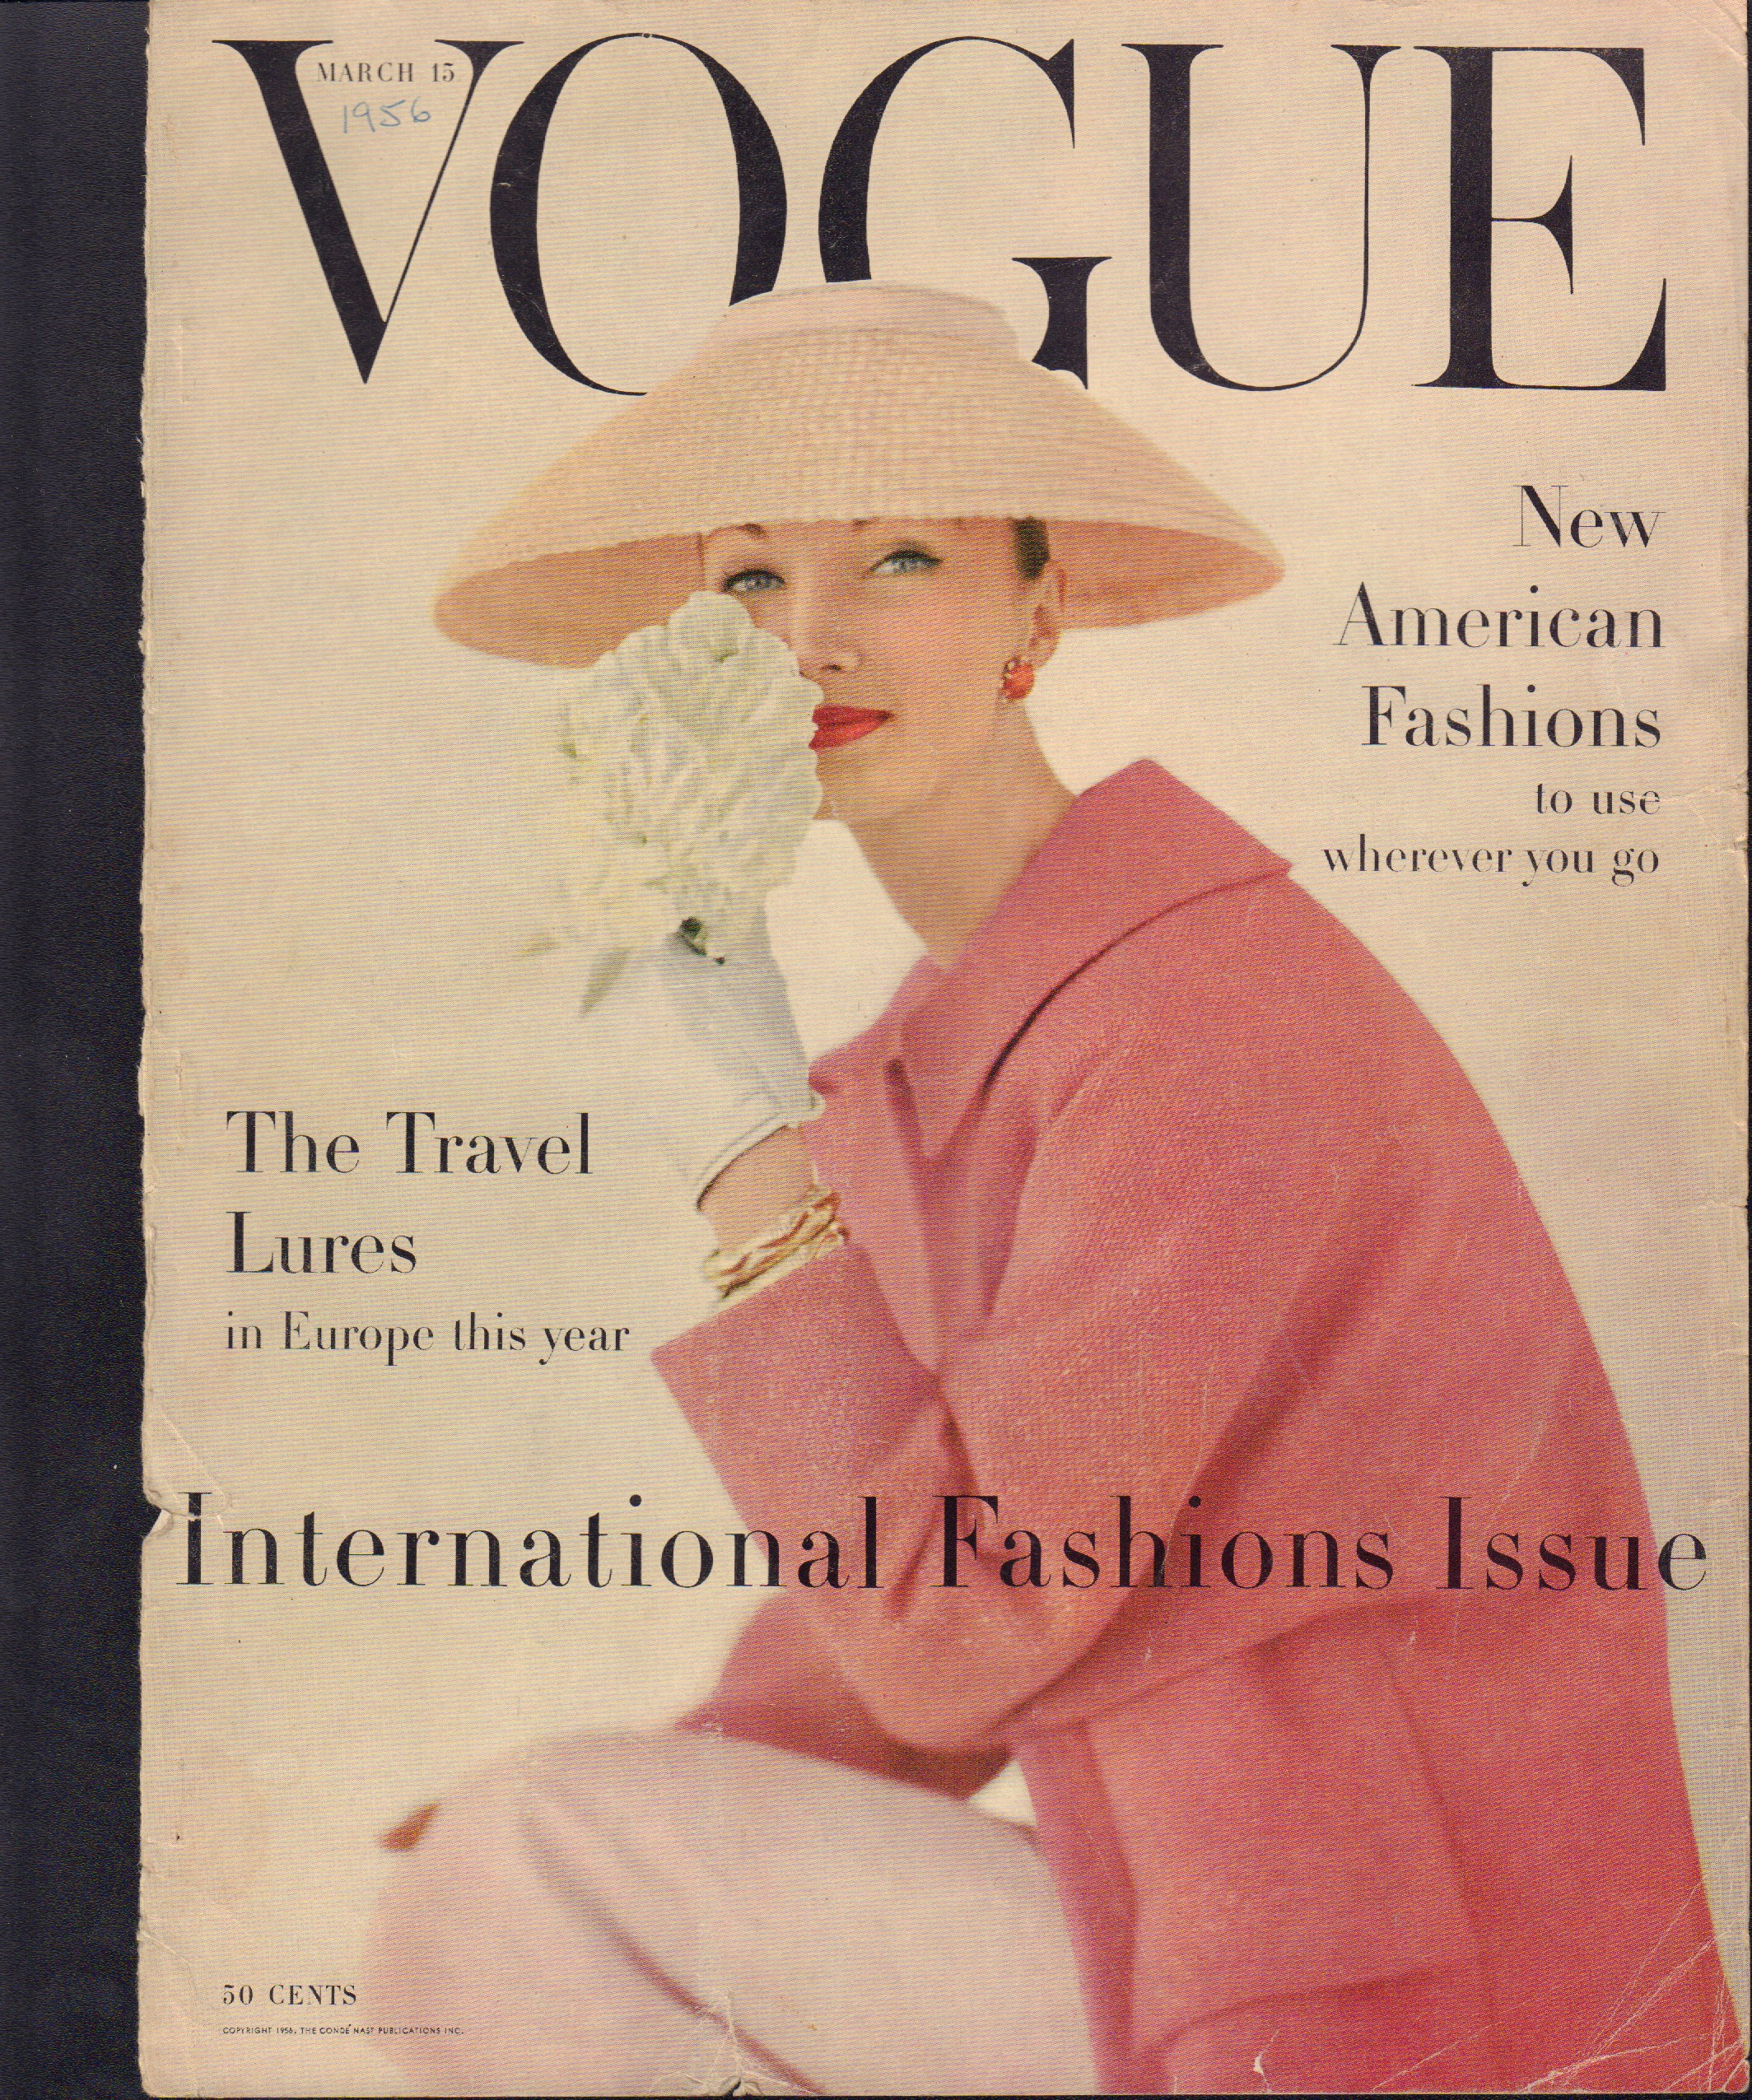 Image for Vogue March 15, 1956 Cover